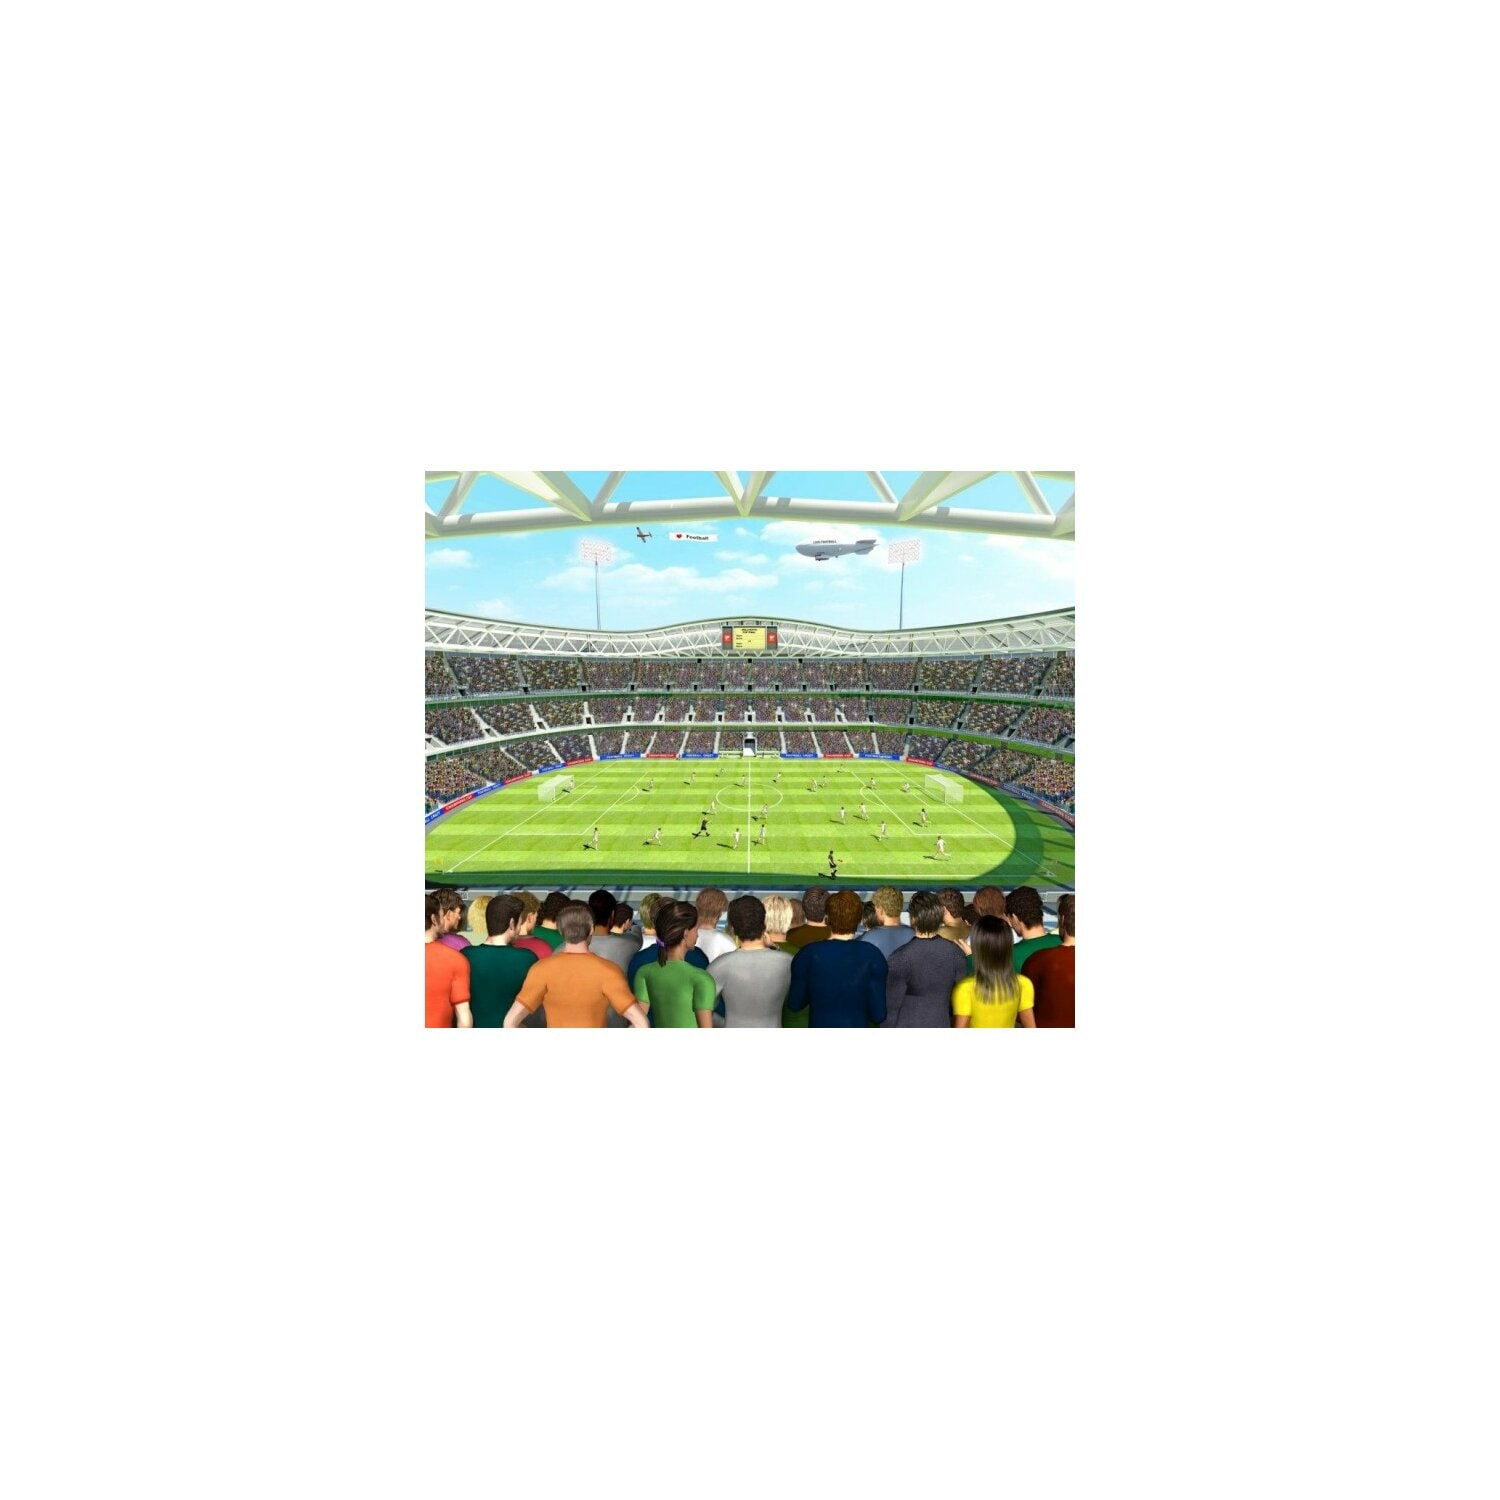 Fototapeta WALLTASTIC 41769 Football Crazy 243,84x304,80cm